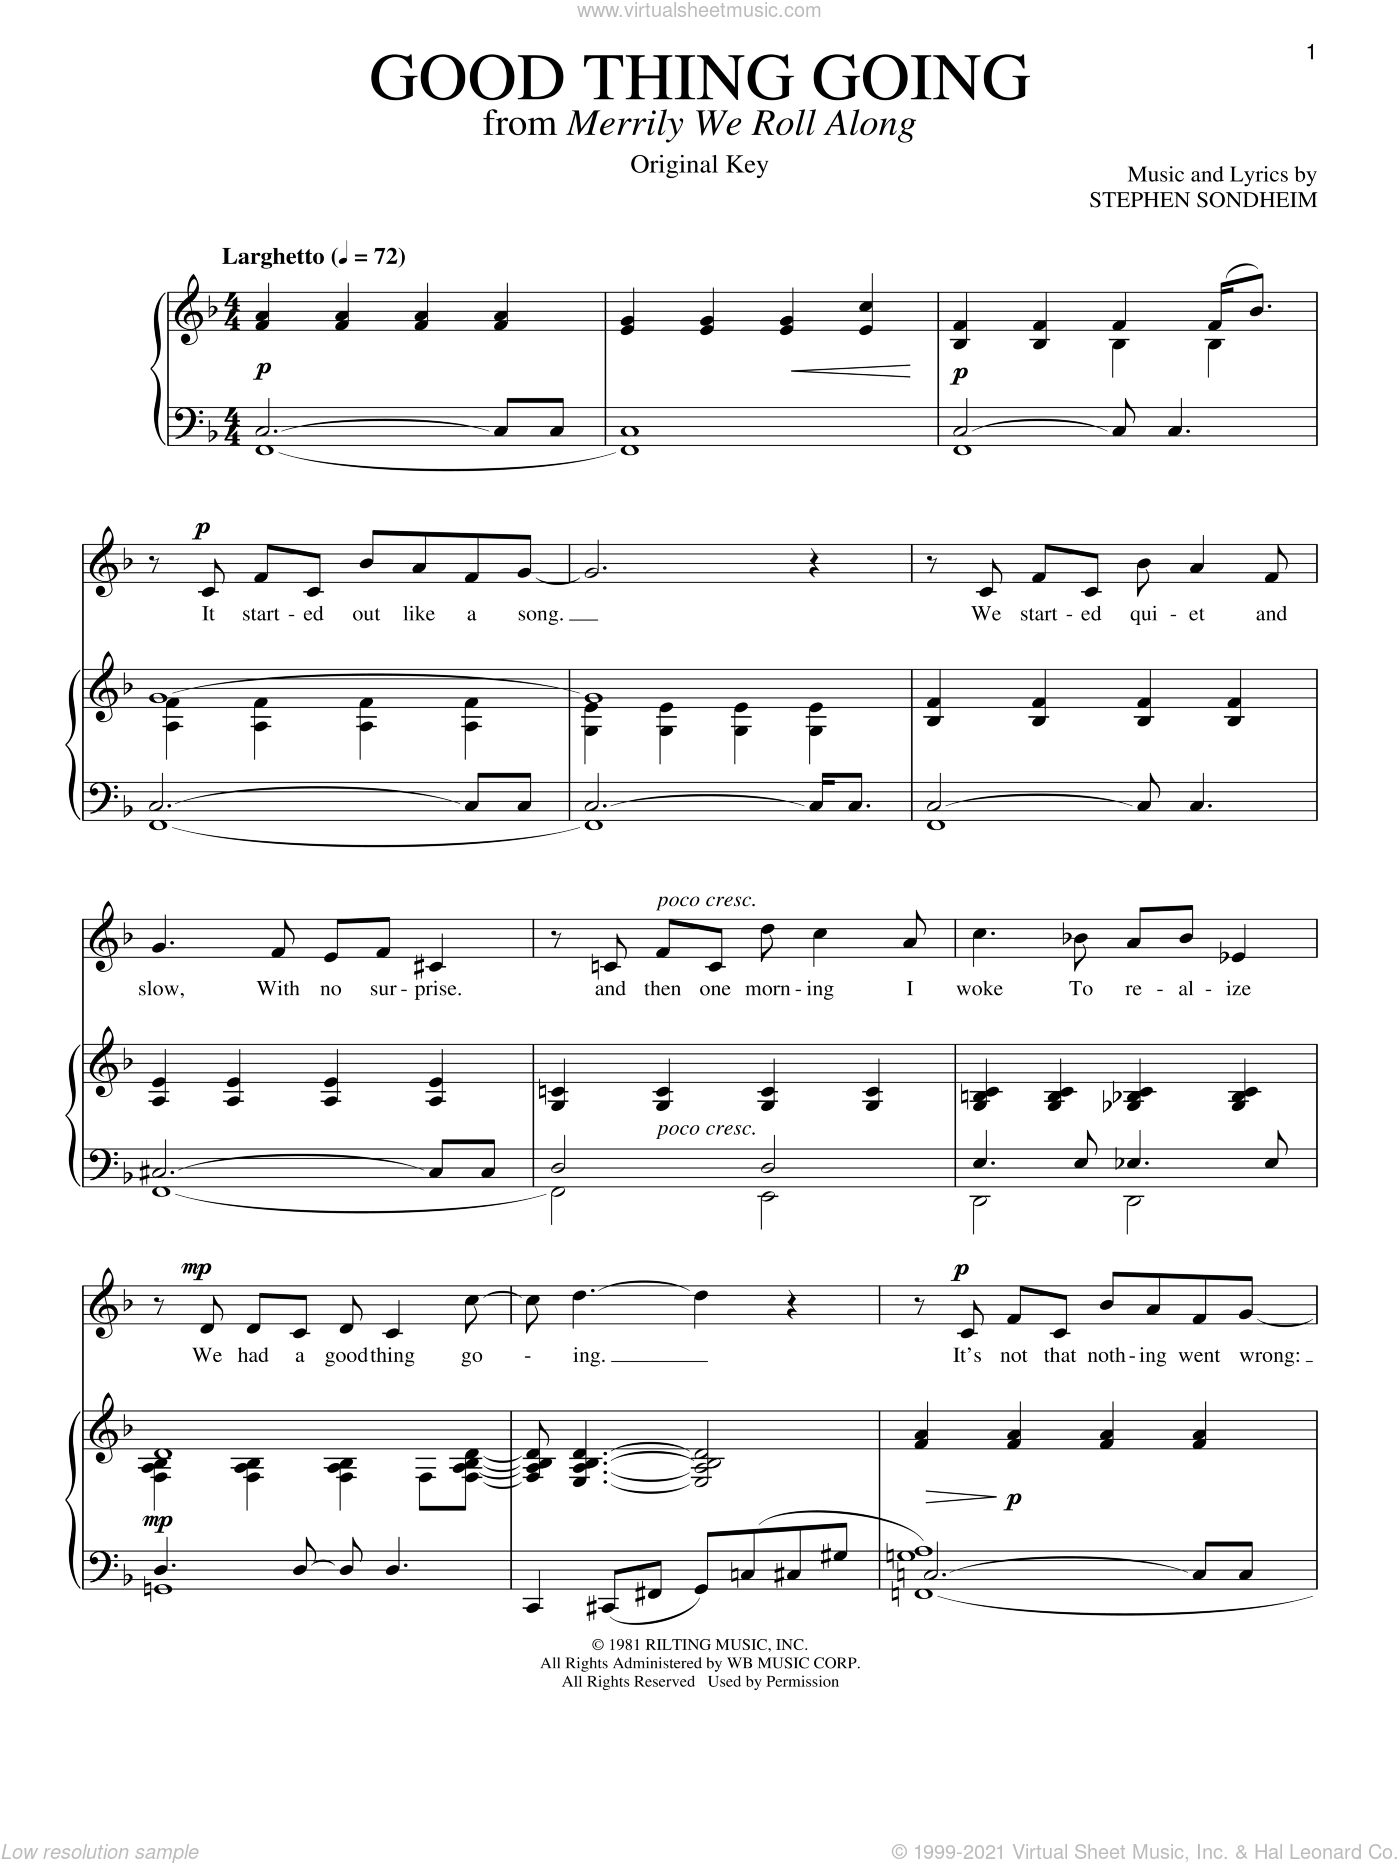 Good Thing Going sheet music for voice and piano by Stephen Sondheim